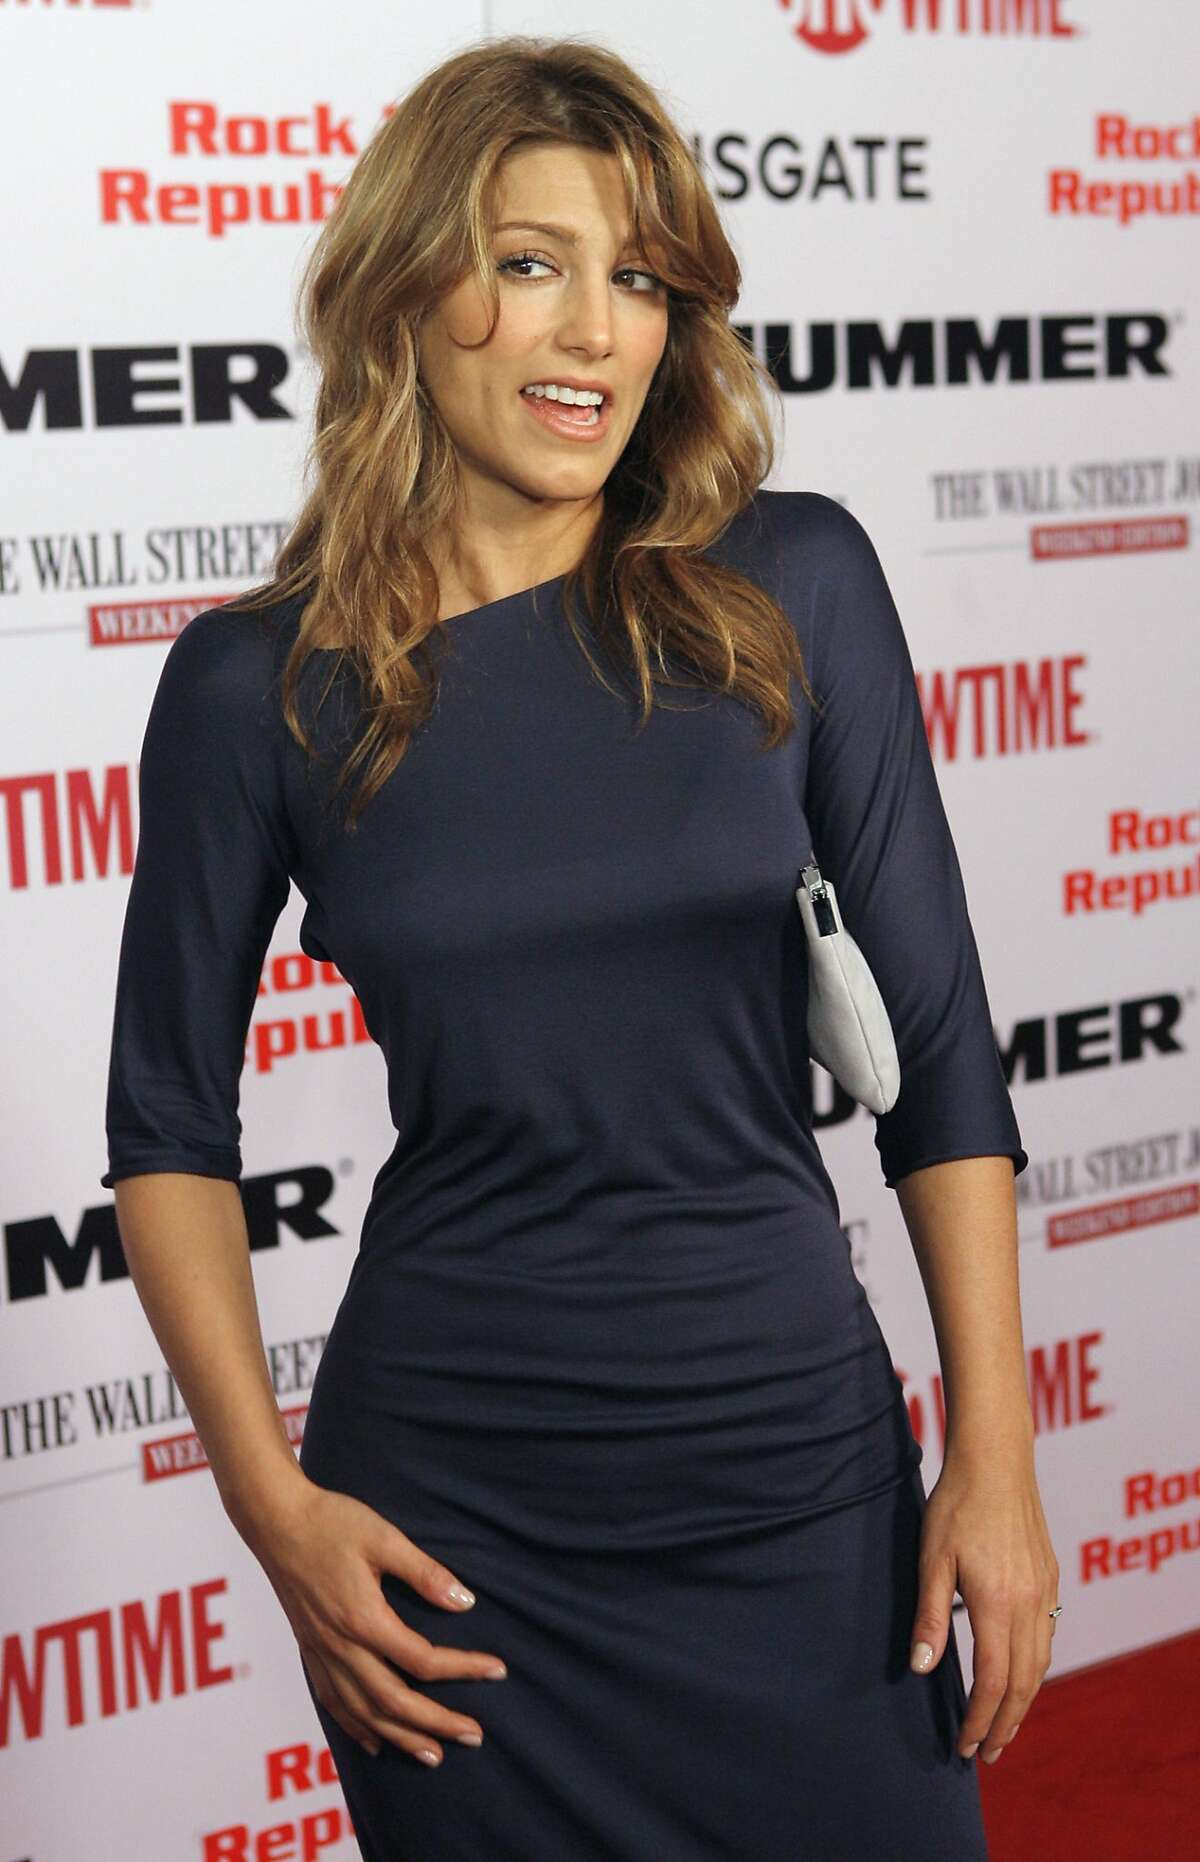 Jennifer Esposito, one of the actors in the movie